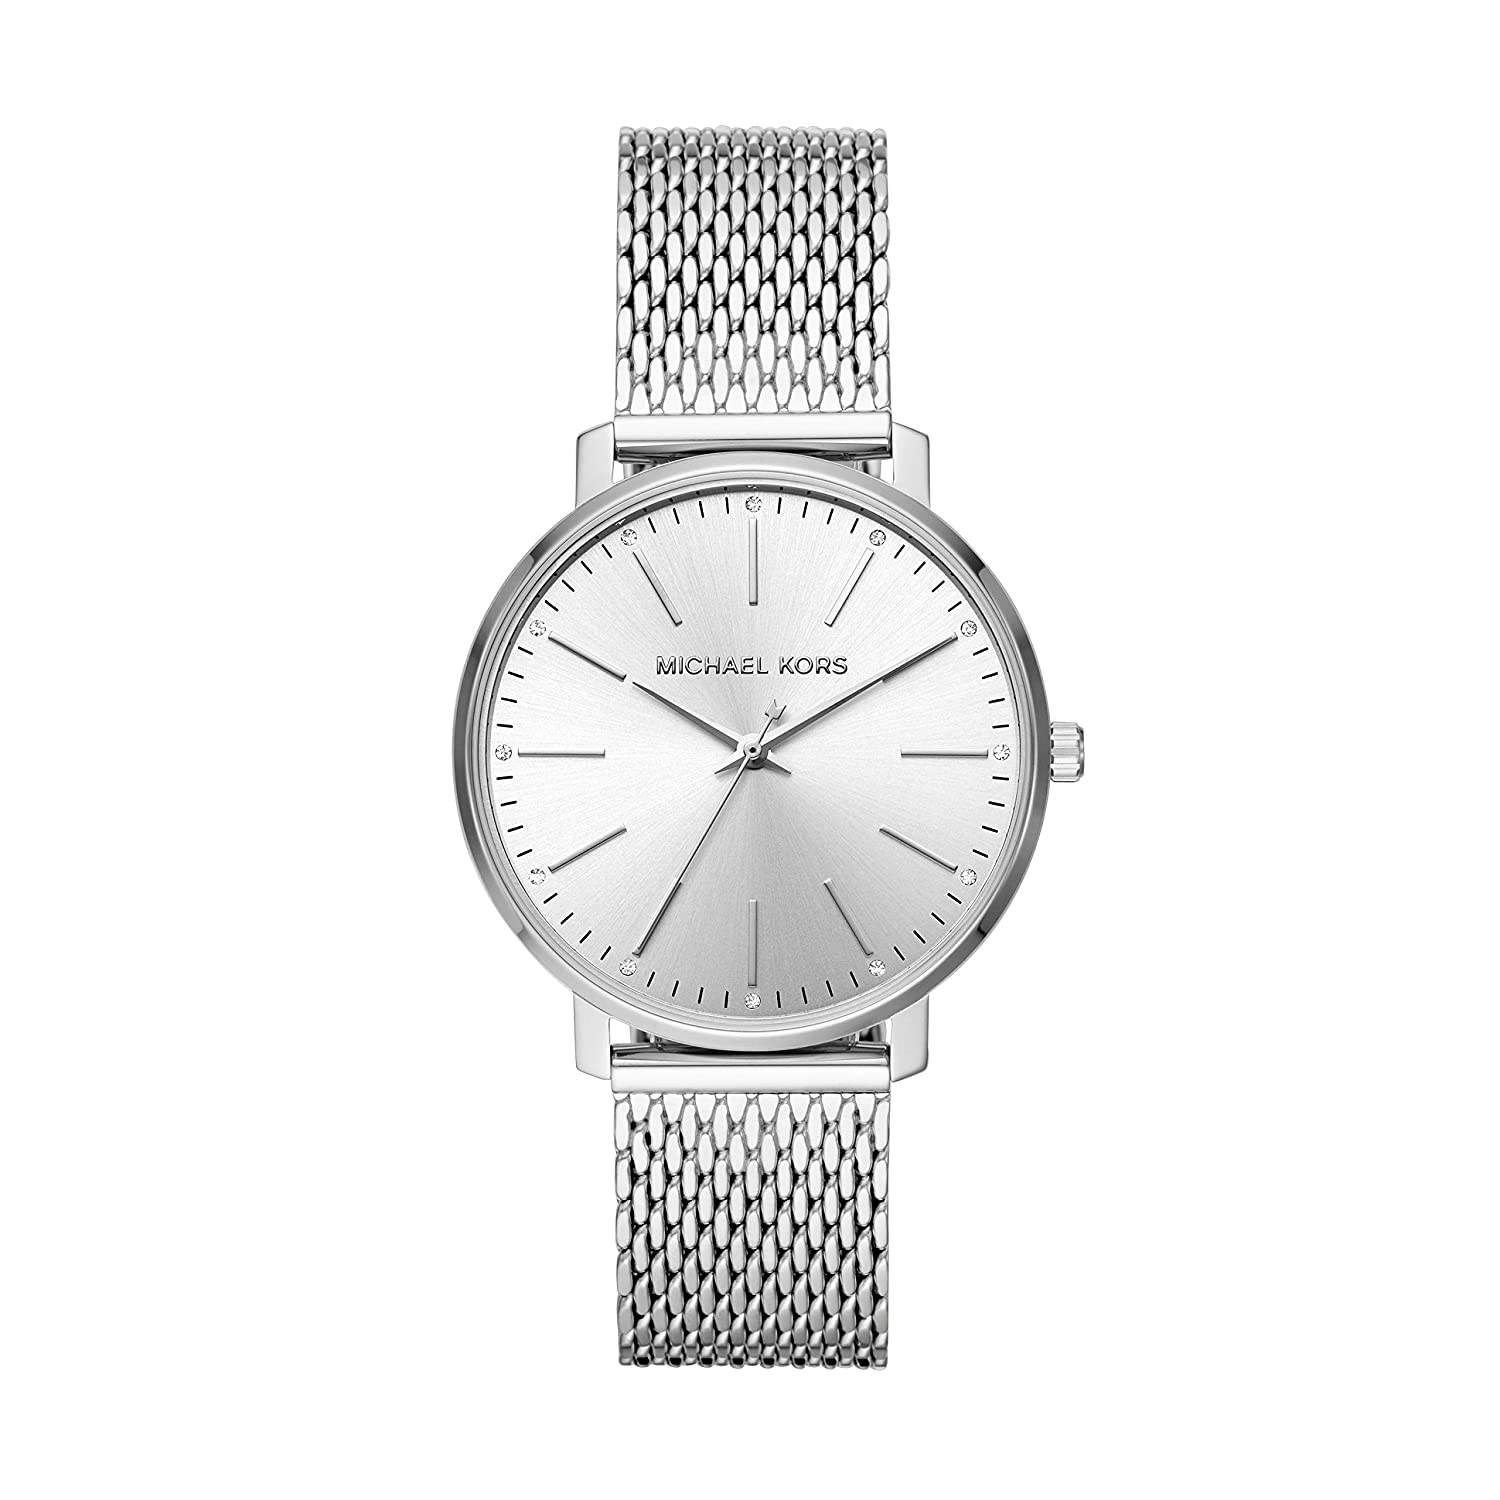 Michael Kors Women s Stainless Steel Quartz Watch with Leather Calfskin Strap